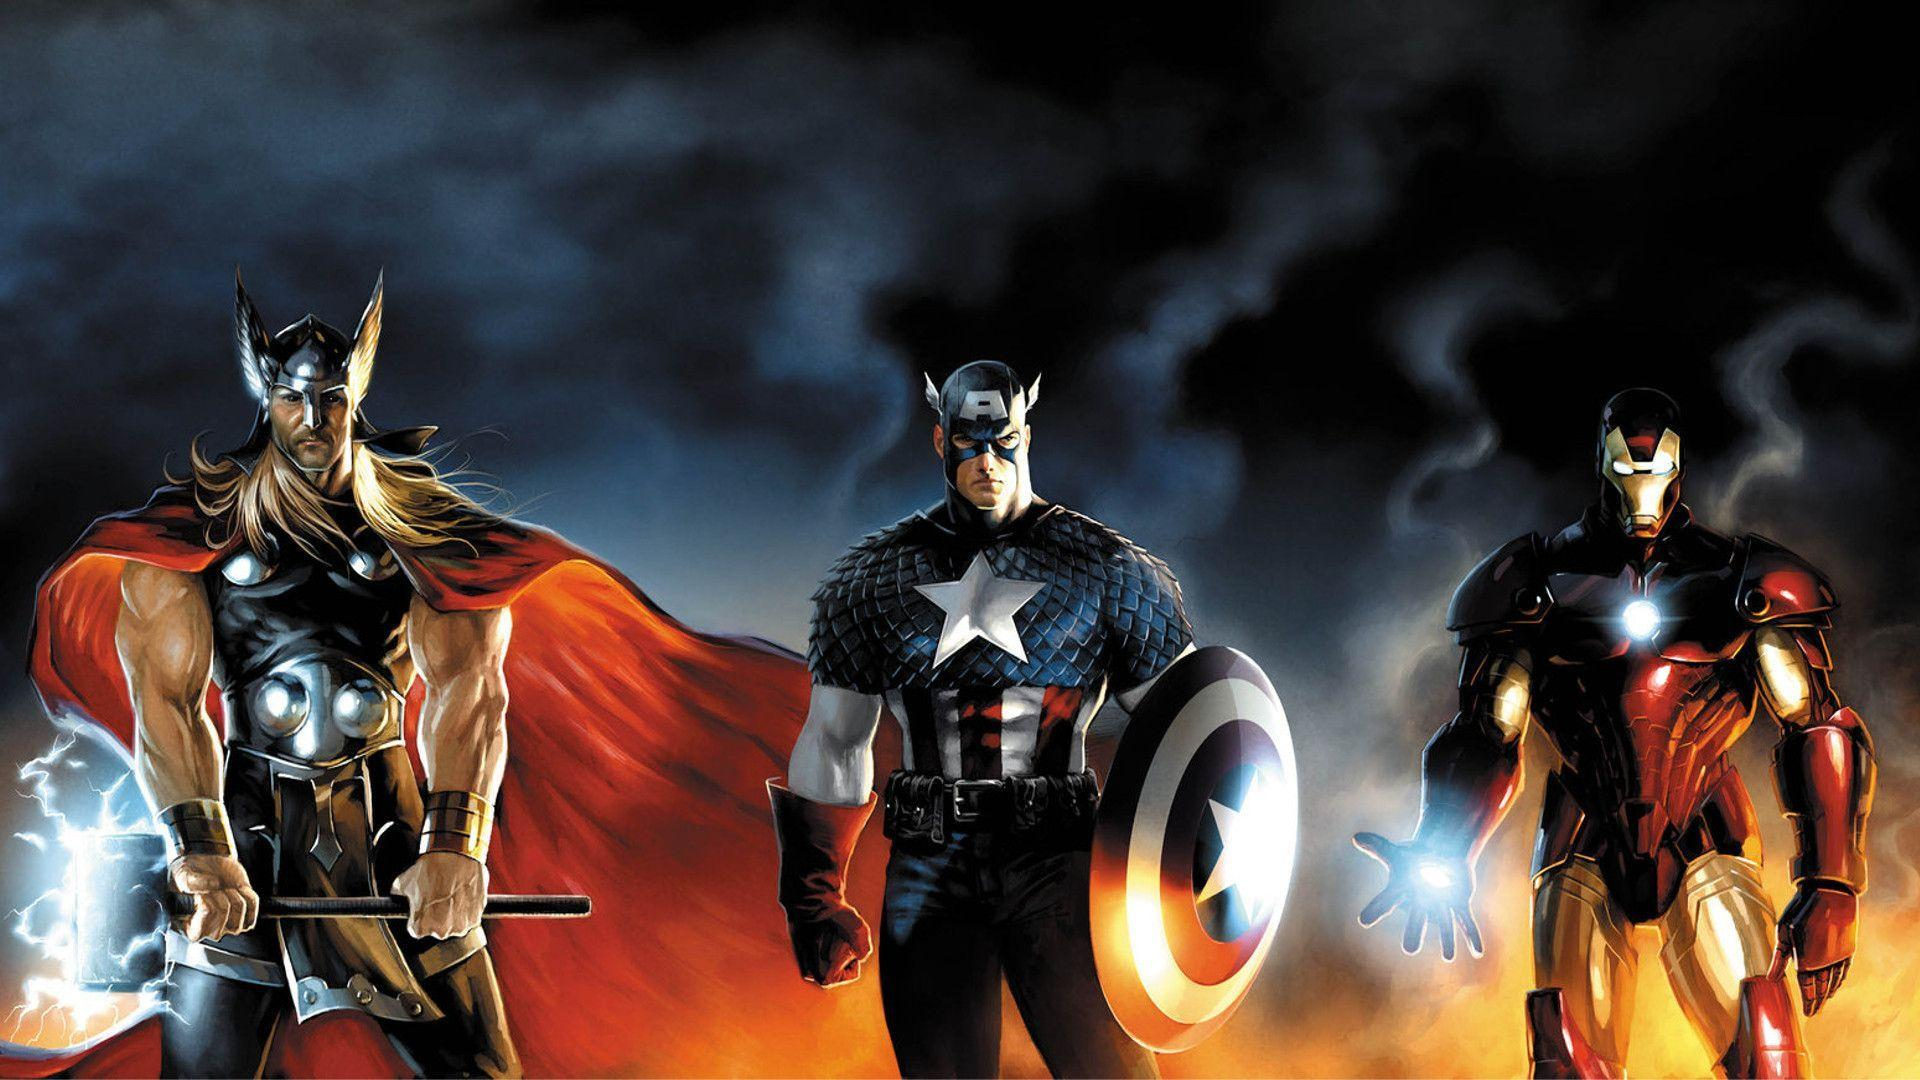 Marvel hero wallpapers wallpaper cave marvel heroes wallpaper 1920x1080 832 download game wallpapers voltagebd Image collections